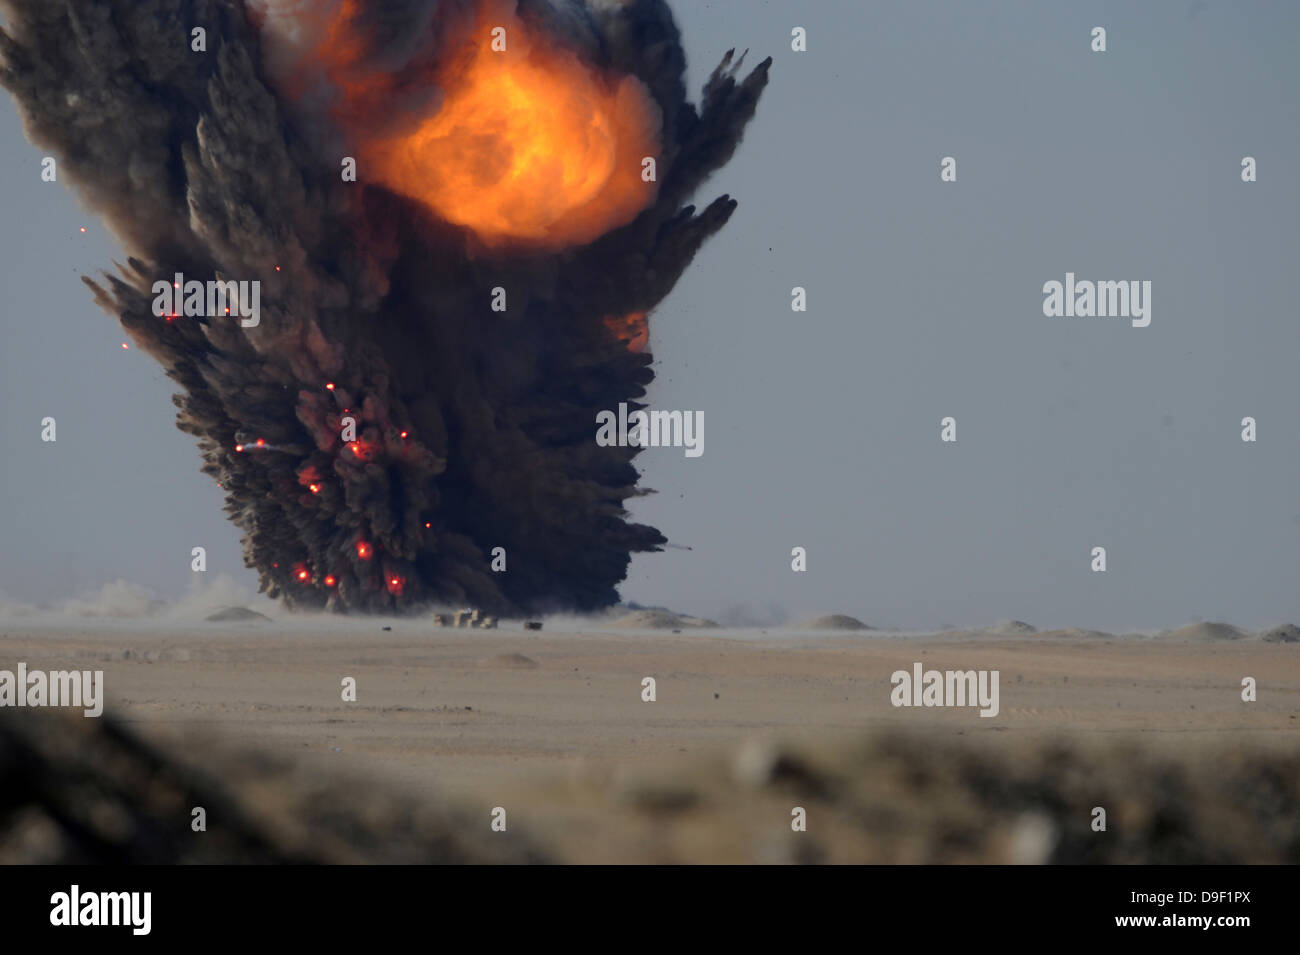 A munitions disposal explosion in Kuwait. - Stock Image